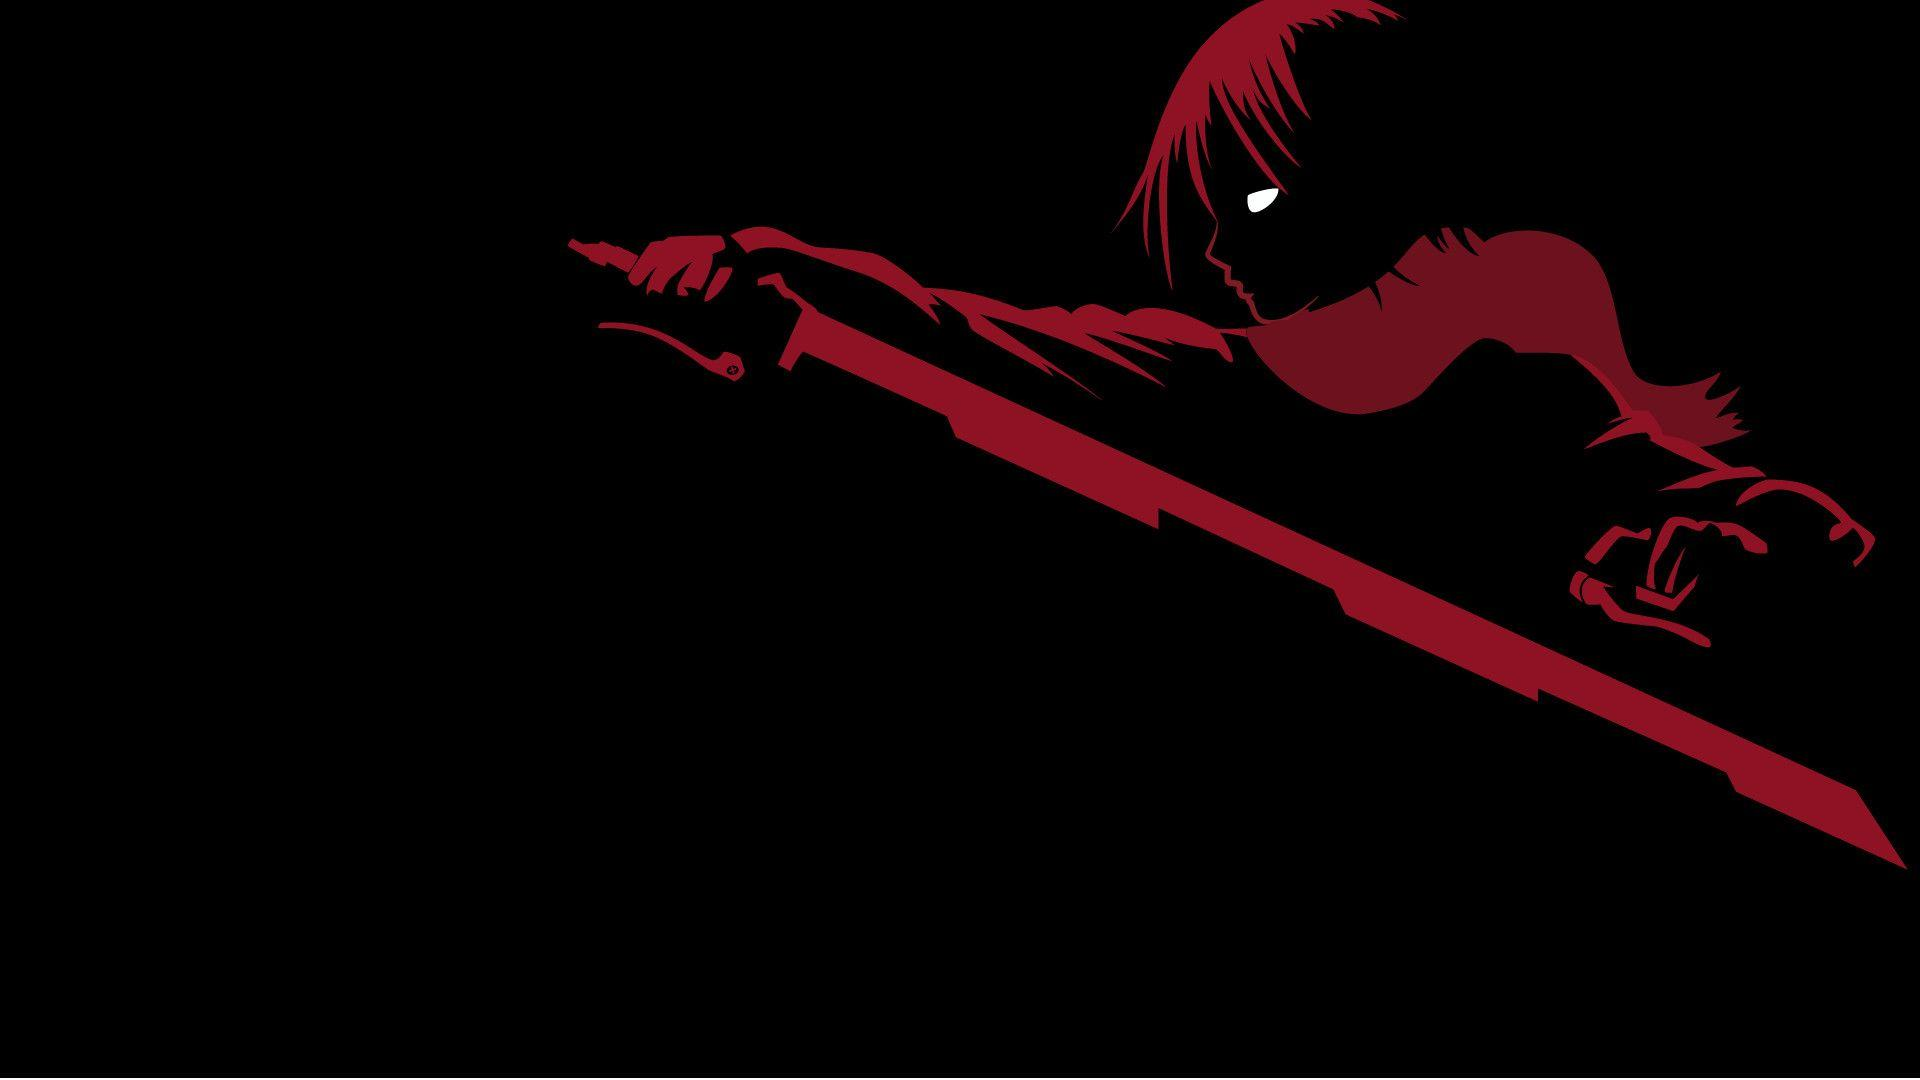 Anime Red 1920x1080 Wallpapers Wallpaper Cave